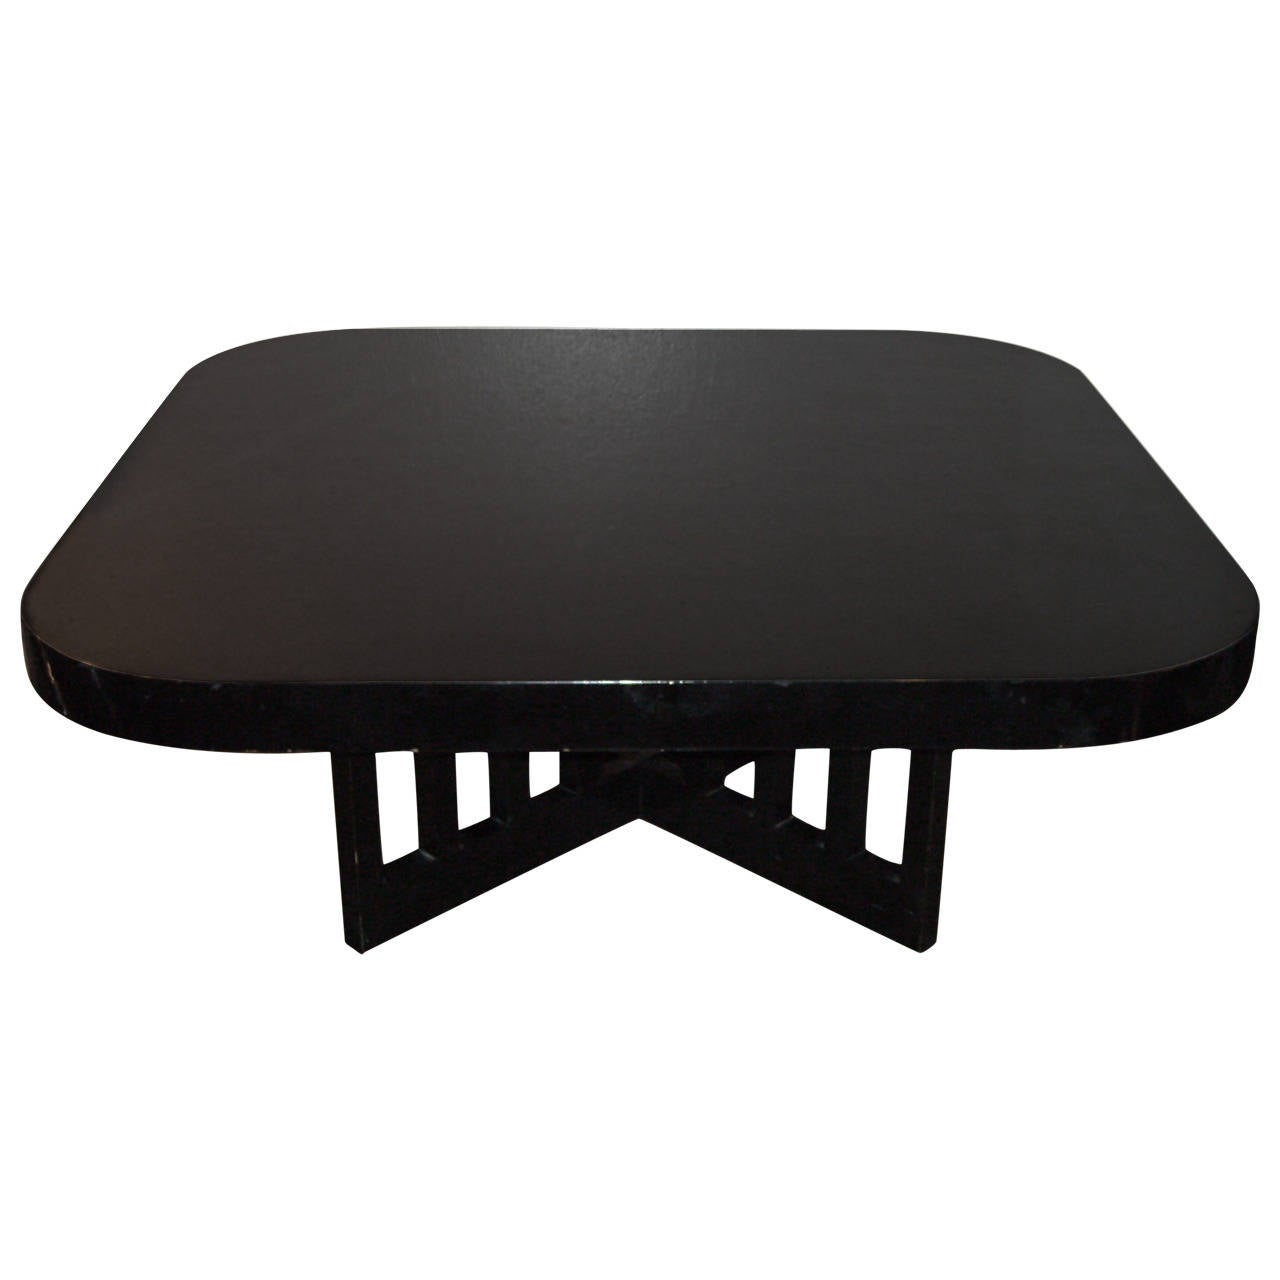 Richard Meier Coffee or Cocktail Table for Knoll Lacquered Wood Black